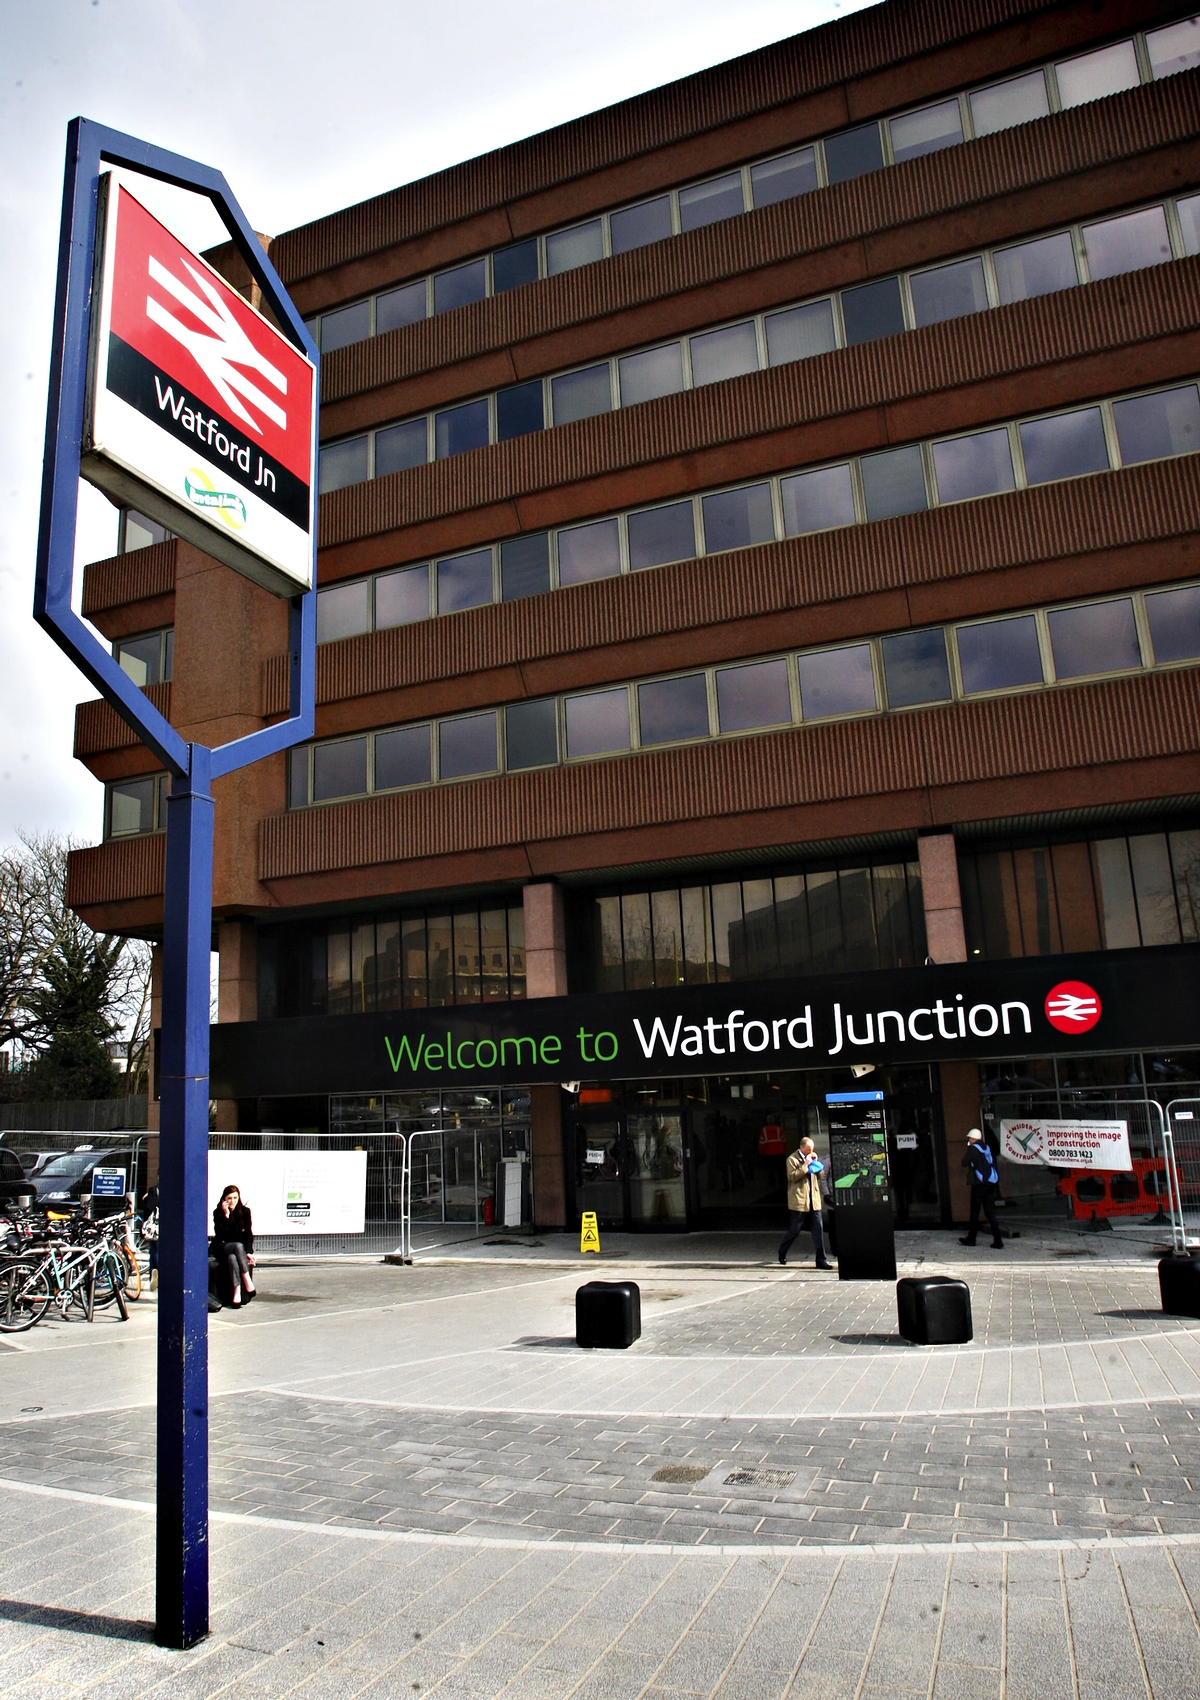 Watford Junction closures reduced following disruption concerns